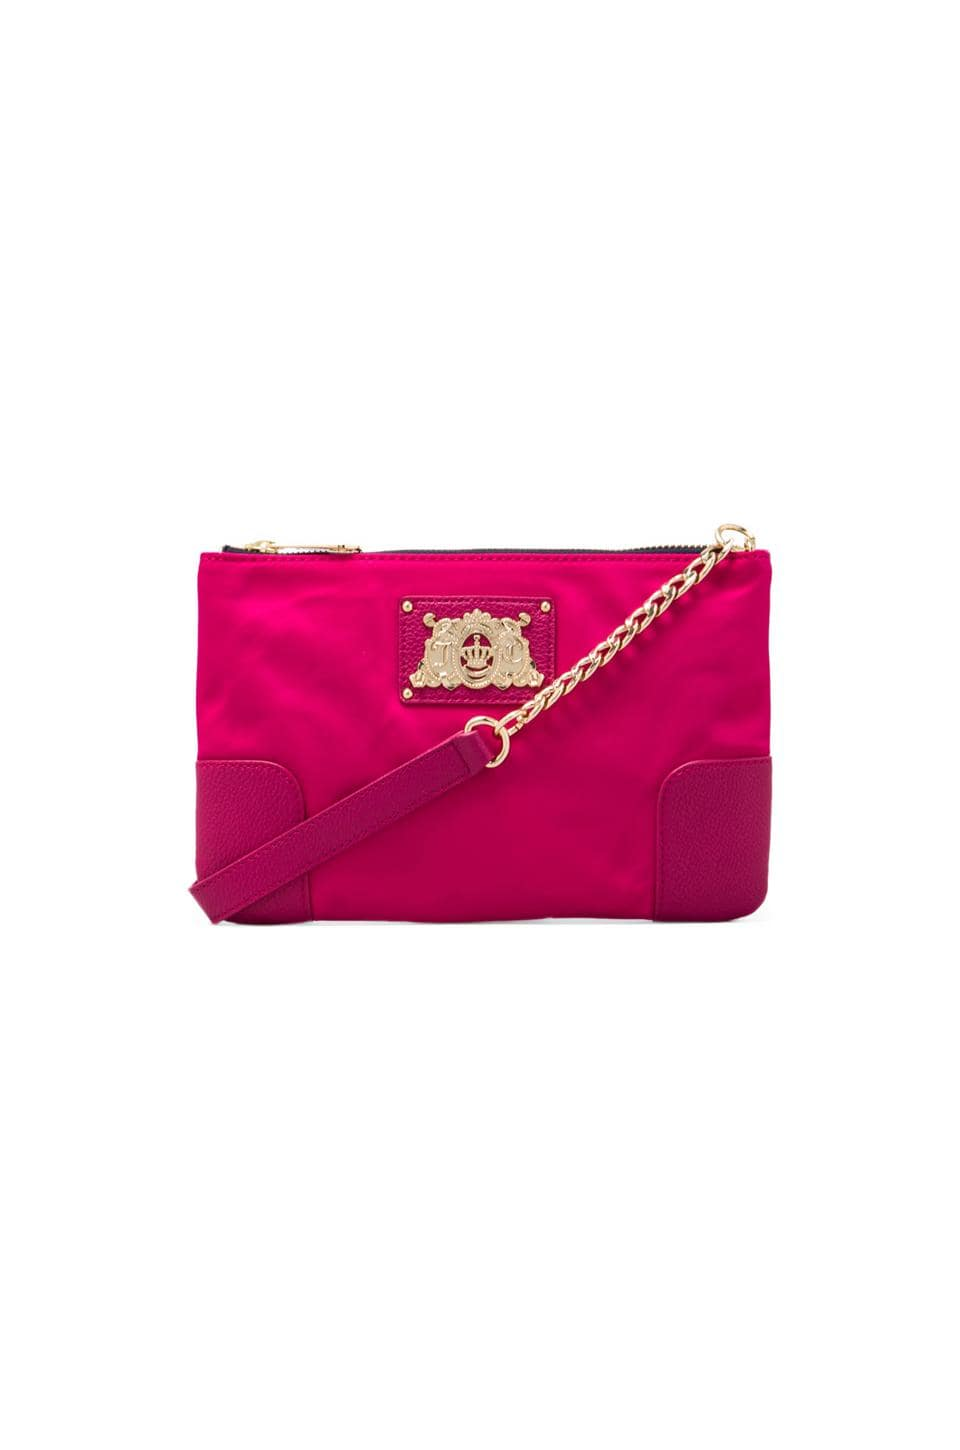 Juicy Couture Malibu Nylon Flat Crossbody in Hot Pink